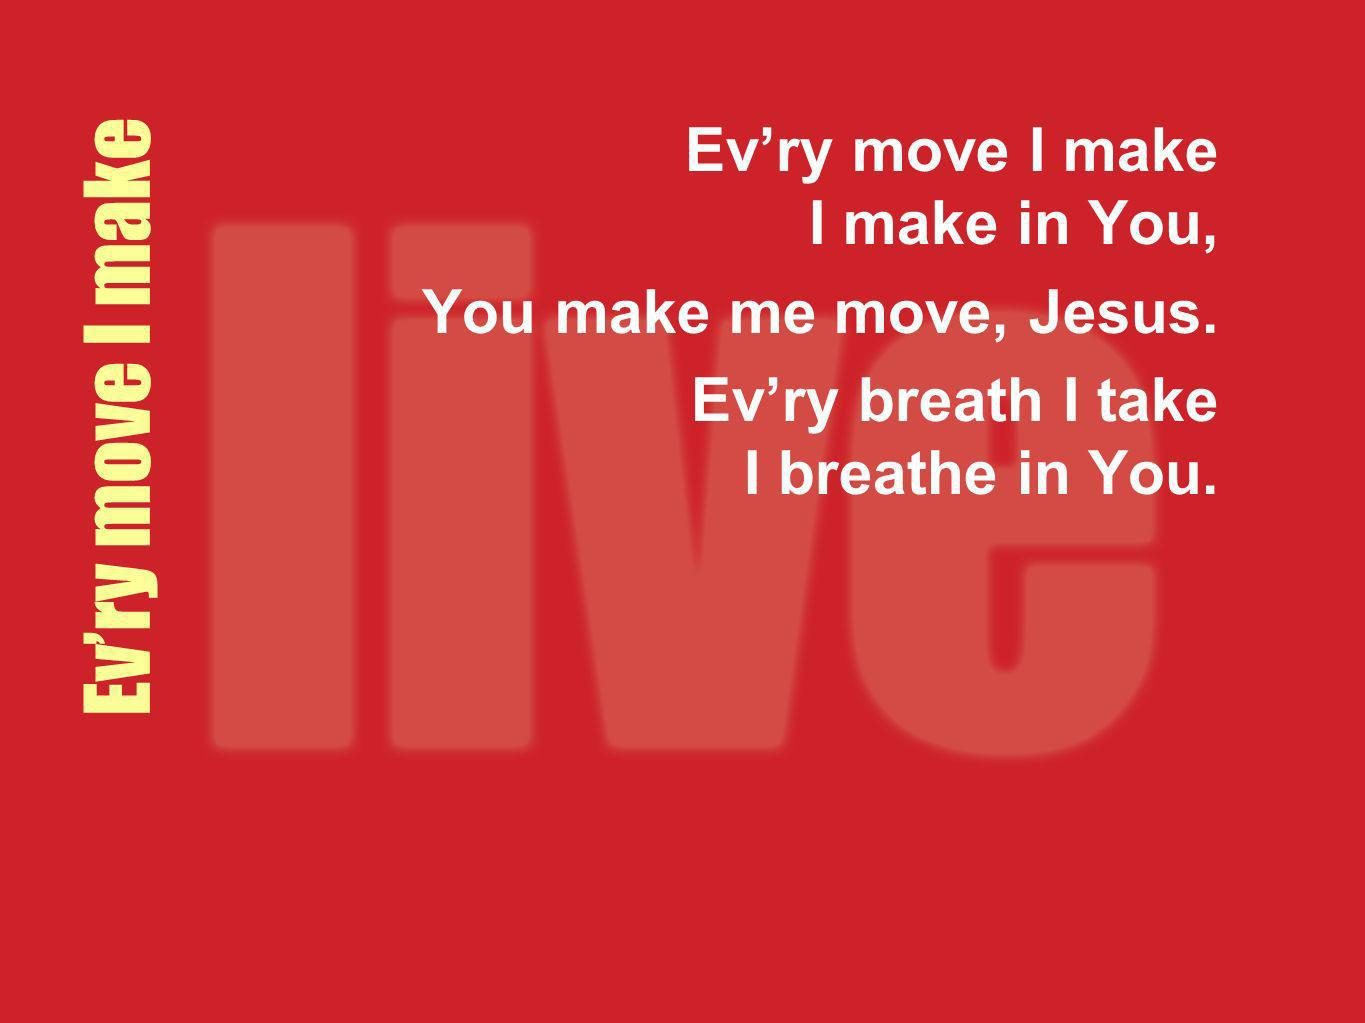 Evry move I make Evry move I make I make in You, You make me move, Jesus. Evry breath I take I breathe in You.